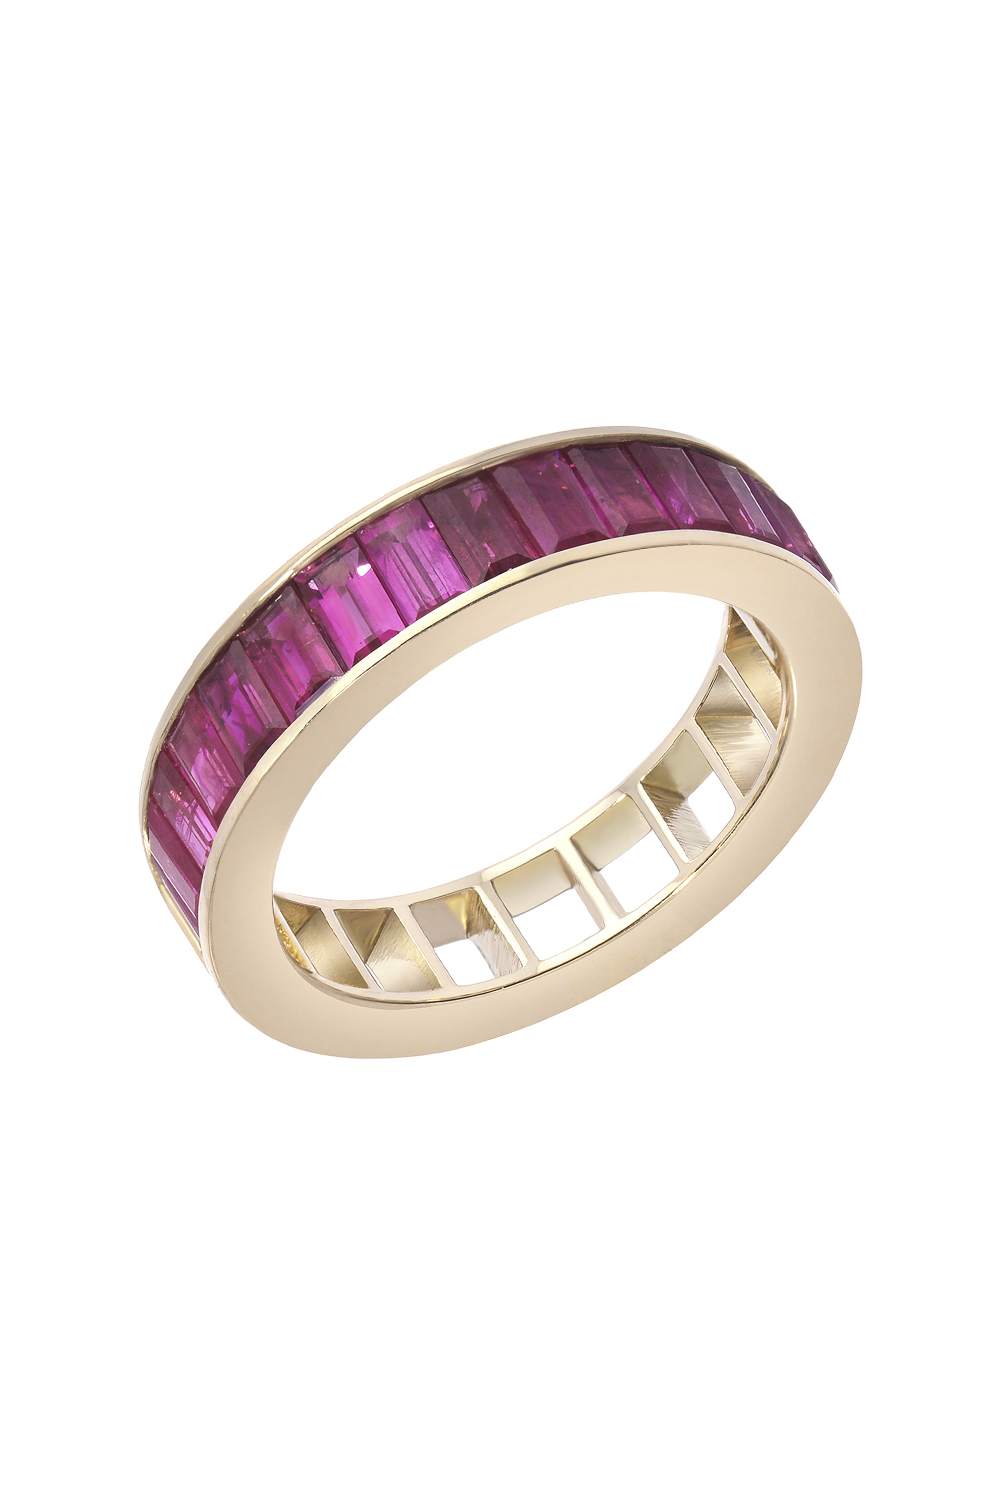 3dc7ce9ae6dc The 50 50 ring is made of 18K Yellow Gold. It consists of half-channel set